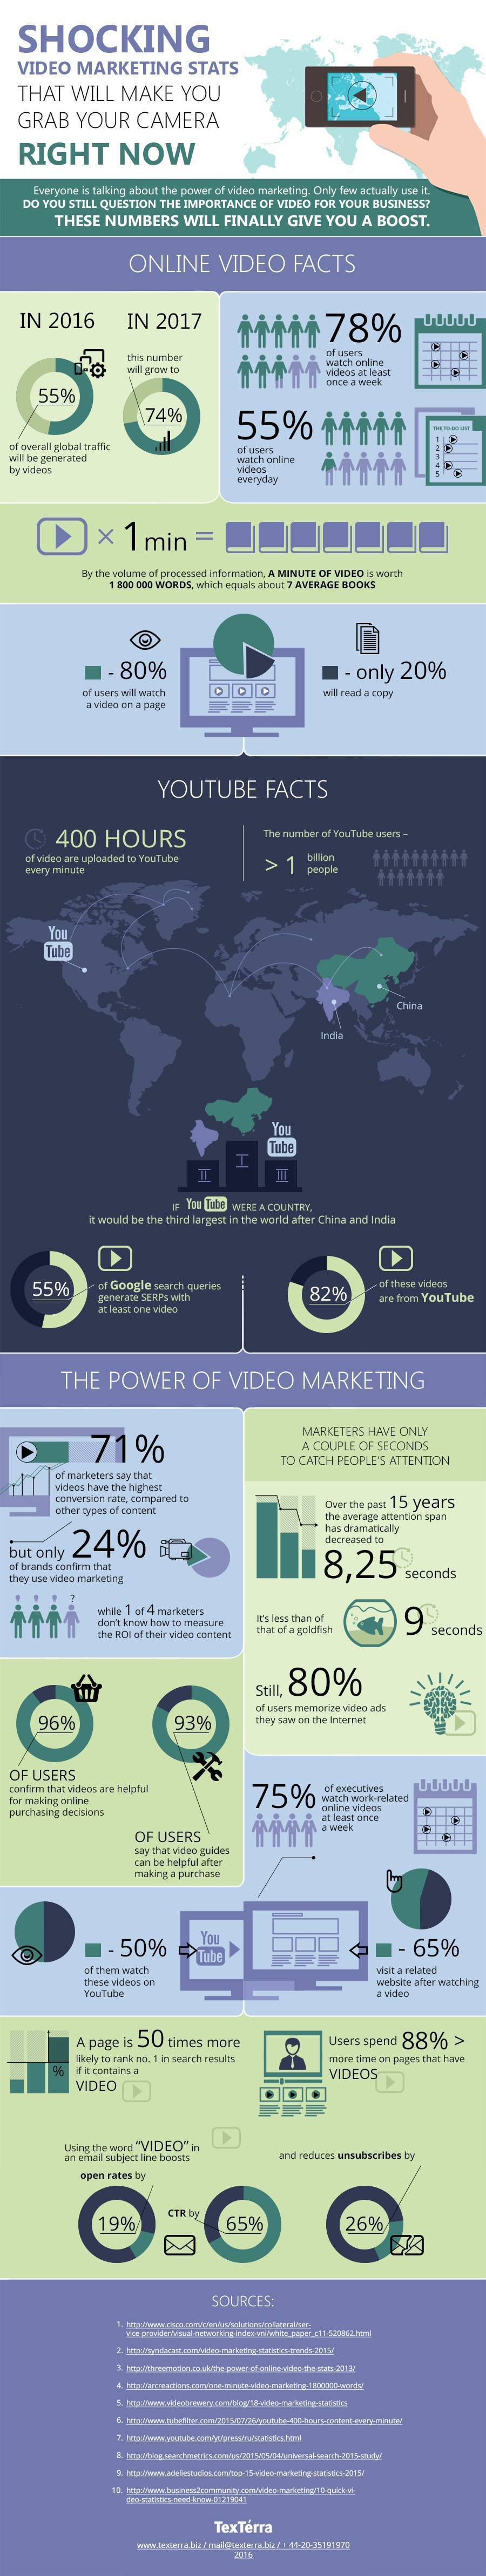 Video Marketing Stats That Will Make You Grab a Cam Right Now